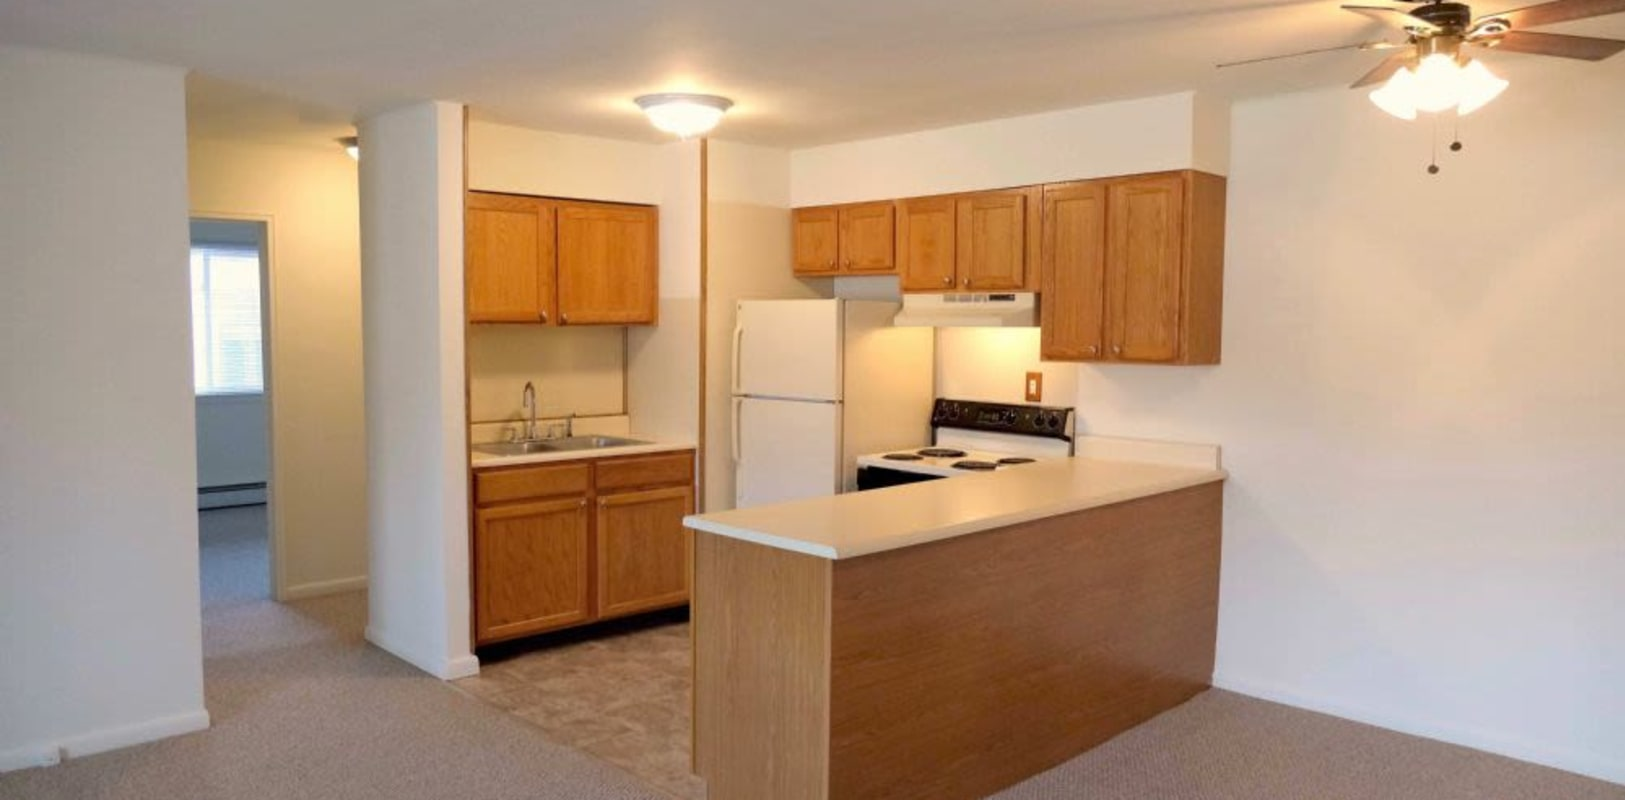 Fully equipped kitchen at Hillside Terrace Apartments in Newton, New Jersey